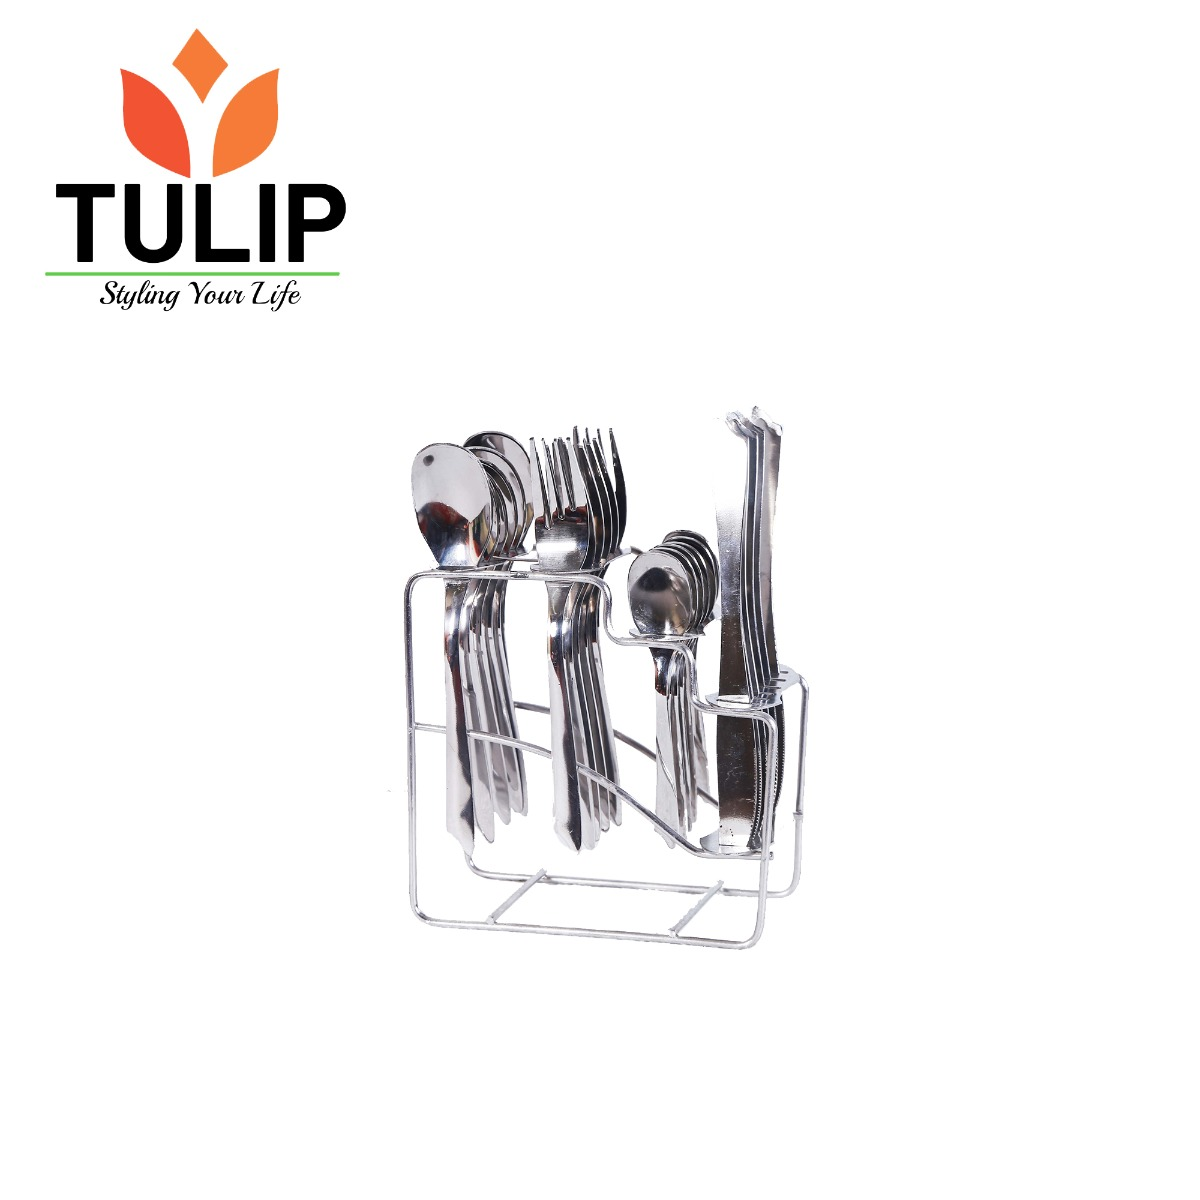 Tulip Steel Cutlery Set with Stand - FANTACY